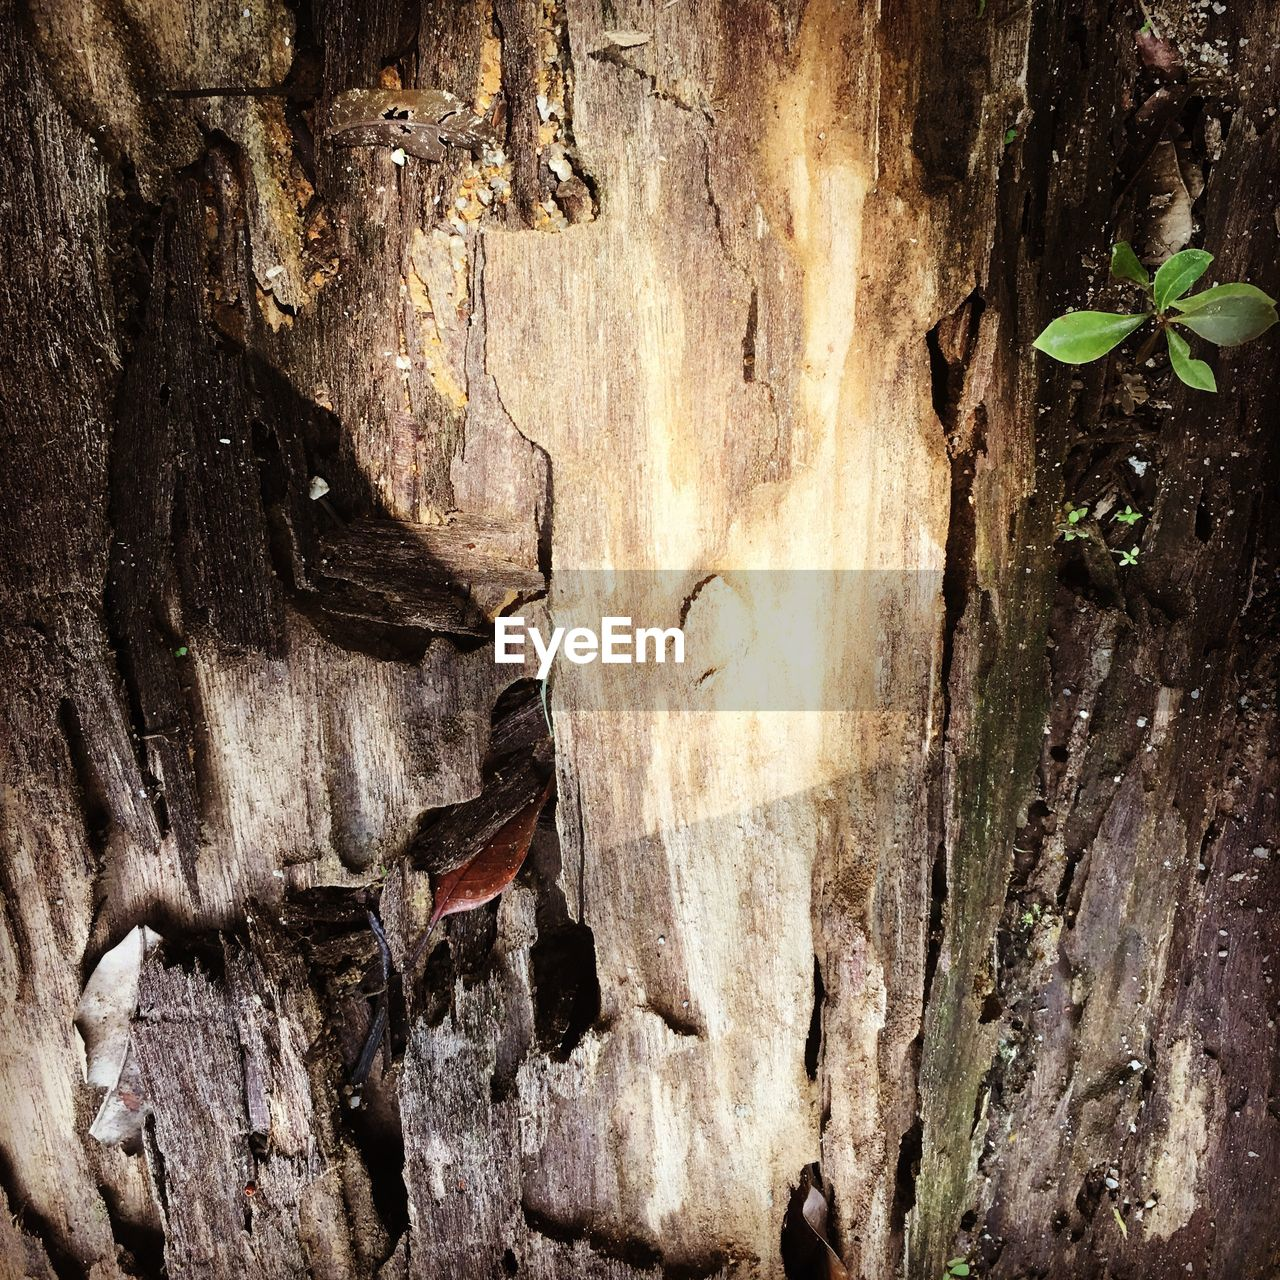 nature, rock - object, textured, cave, stalactite, no people, tree trunk, beauty in nature, close-up, outdoors, day